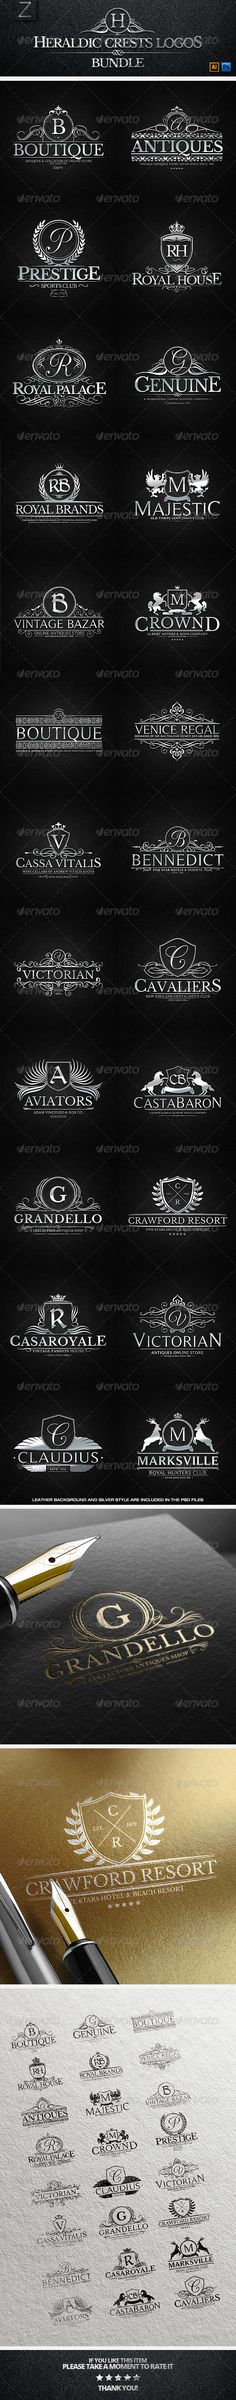 princeton university ballet logo logo design ballet and school logo. Black Bedroom Furniture Sets. Home Design Ideas